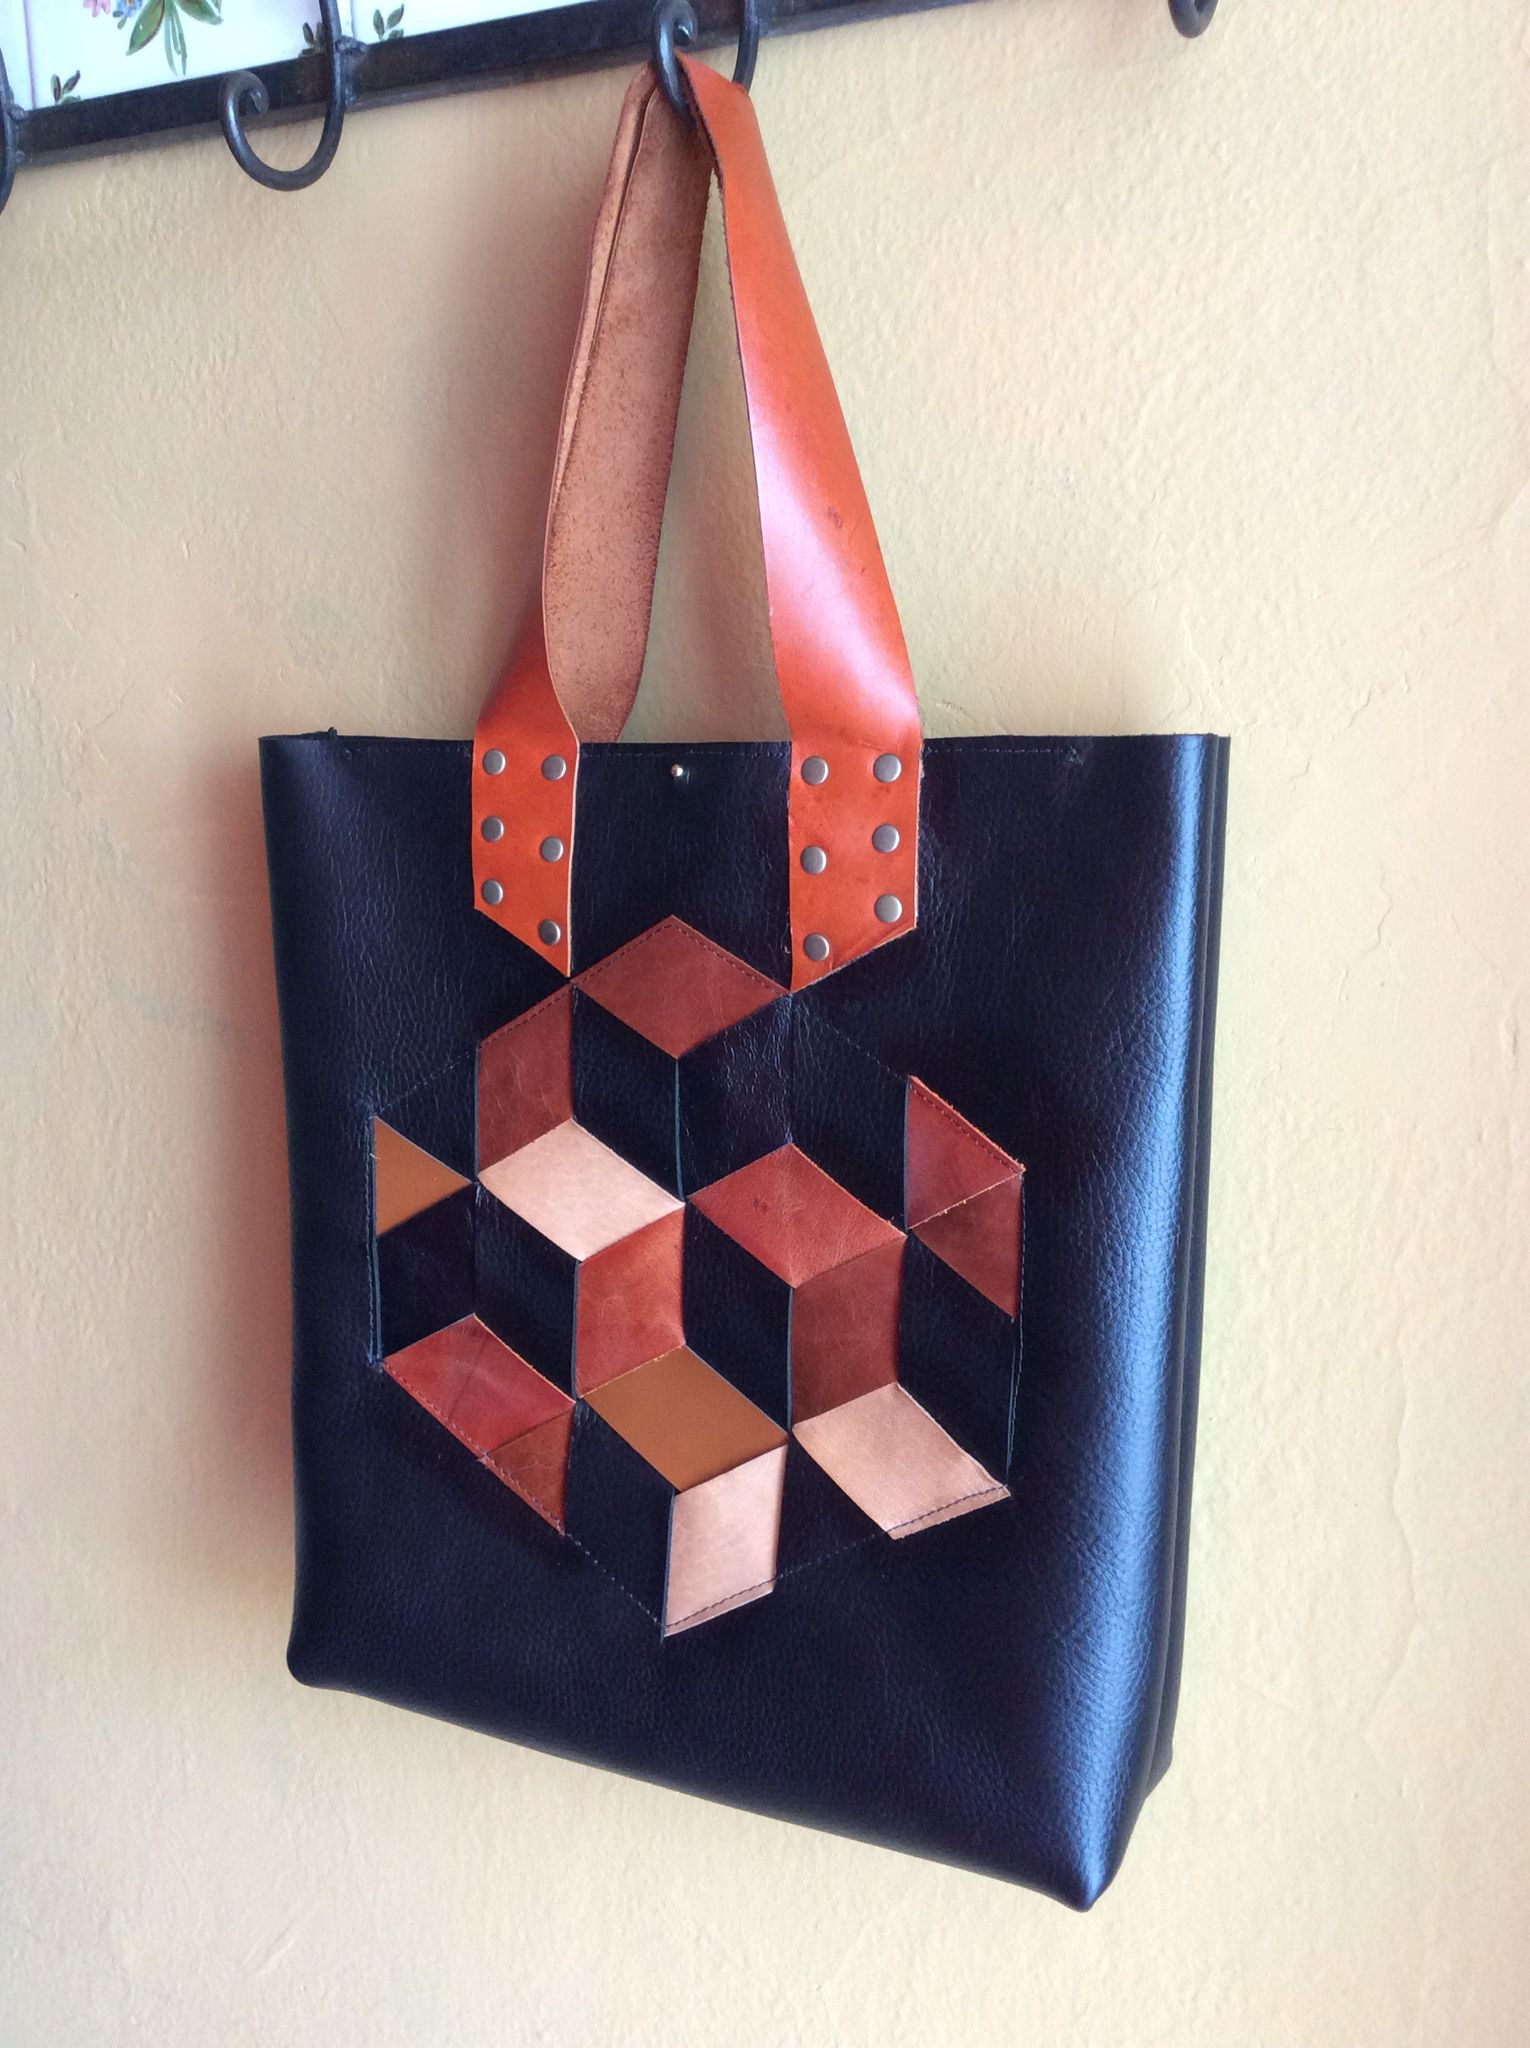 #leather #tote #handcraft by Diego Haristoy